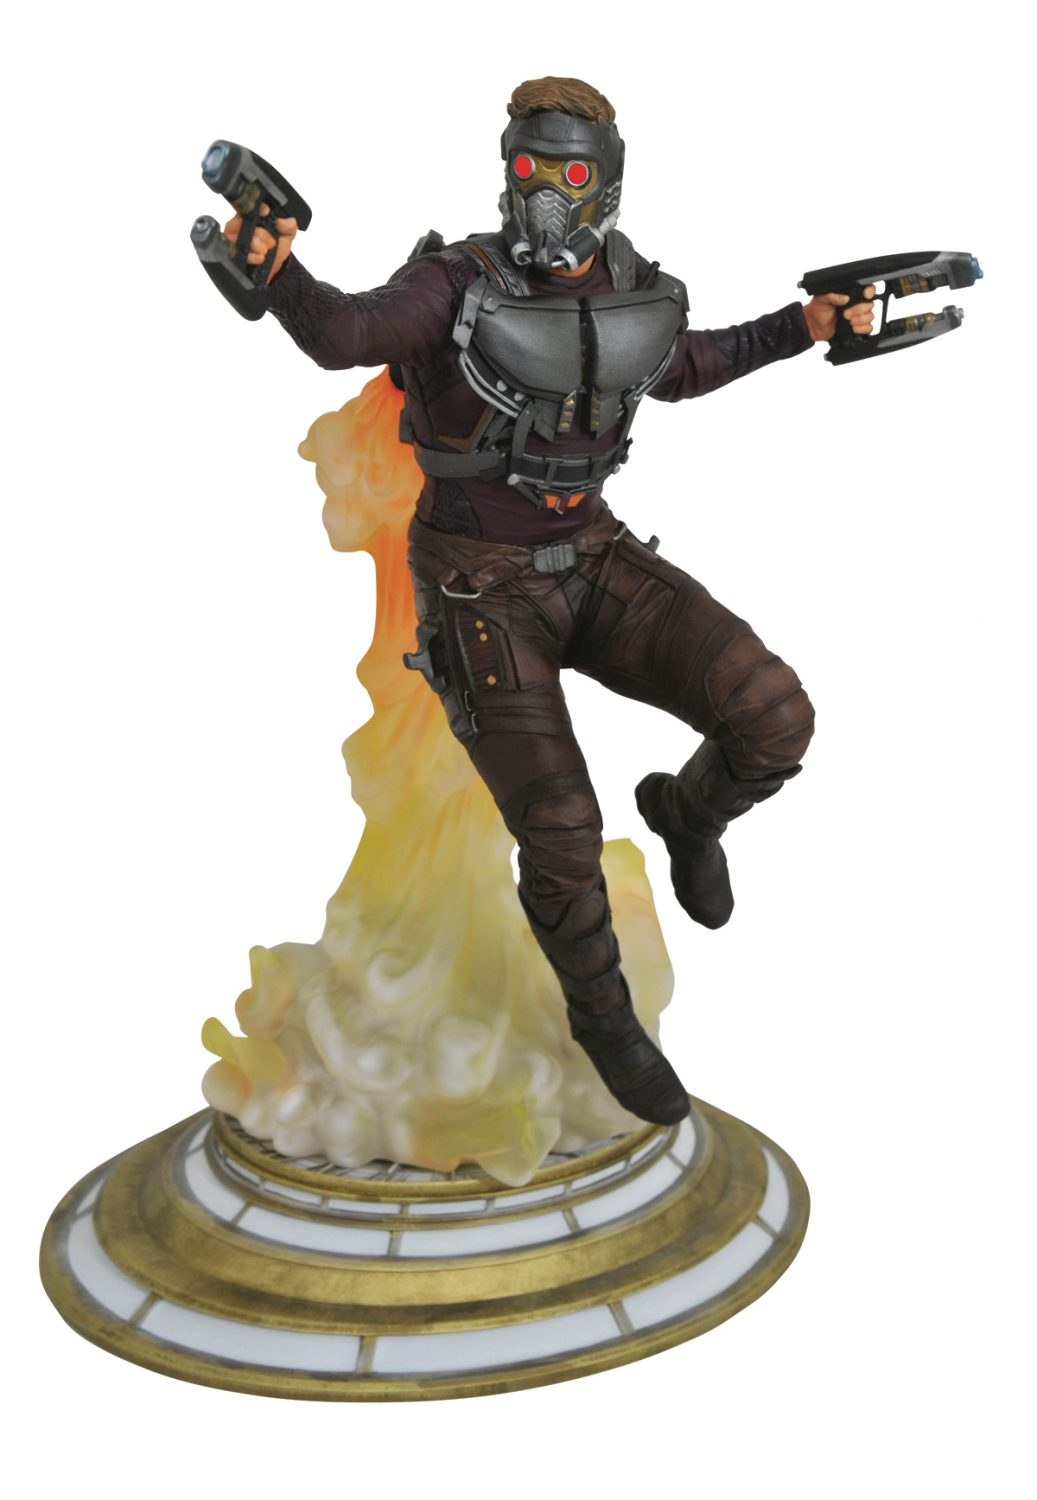 Diamond Select Toys On Sale This Week: Star-Lord, Nightwing, Iron Man & Zero